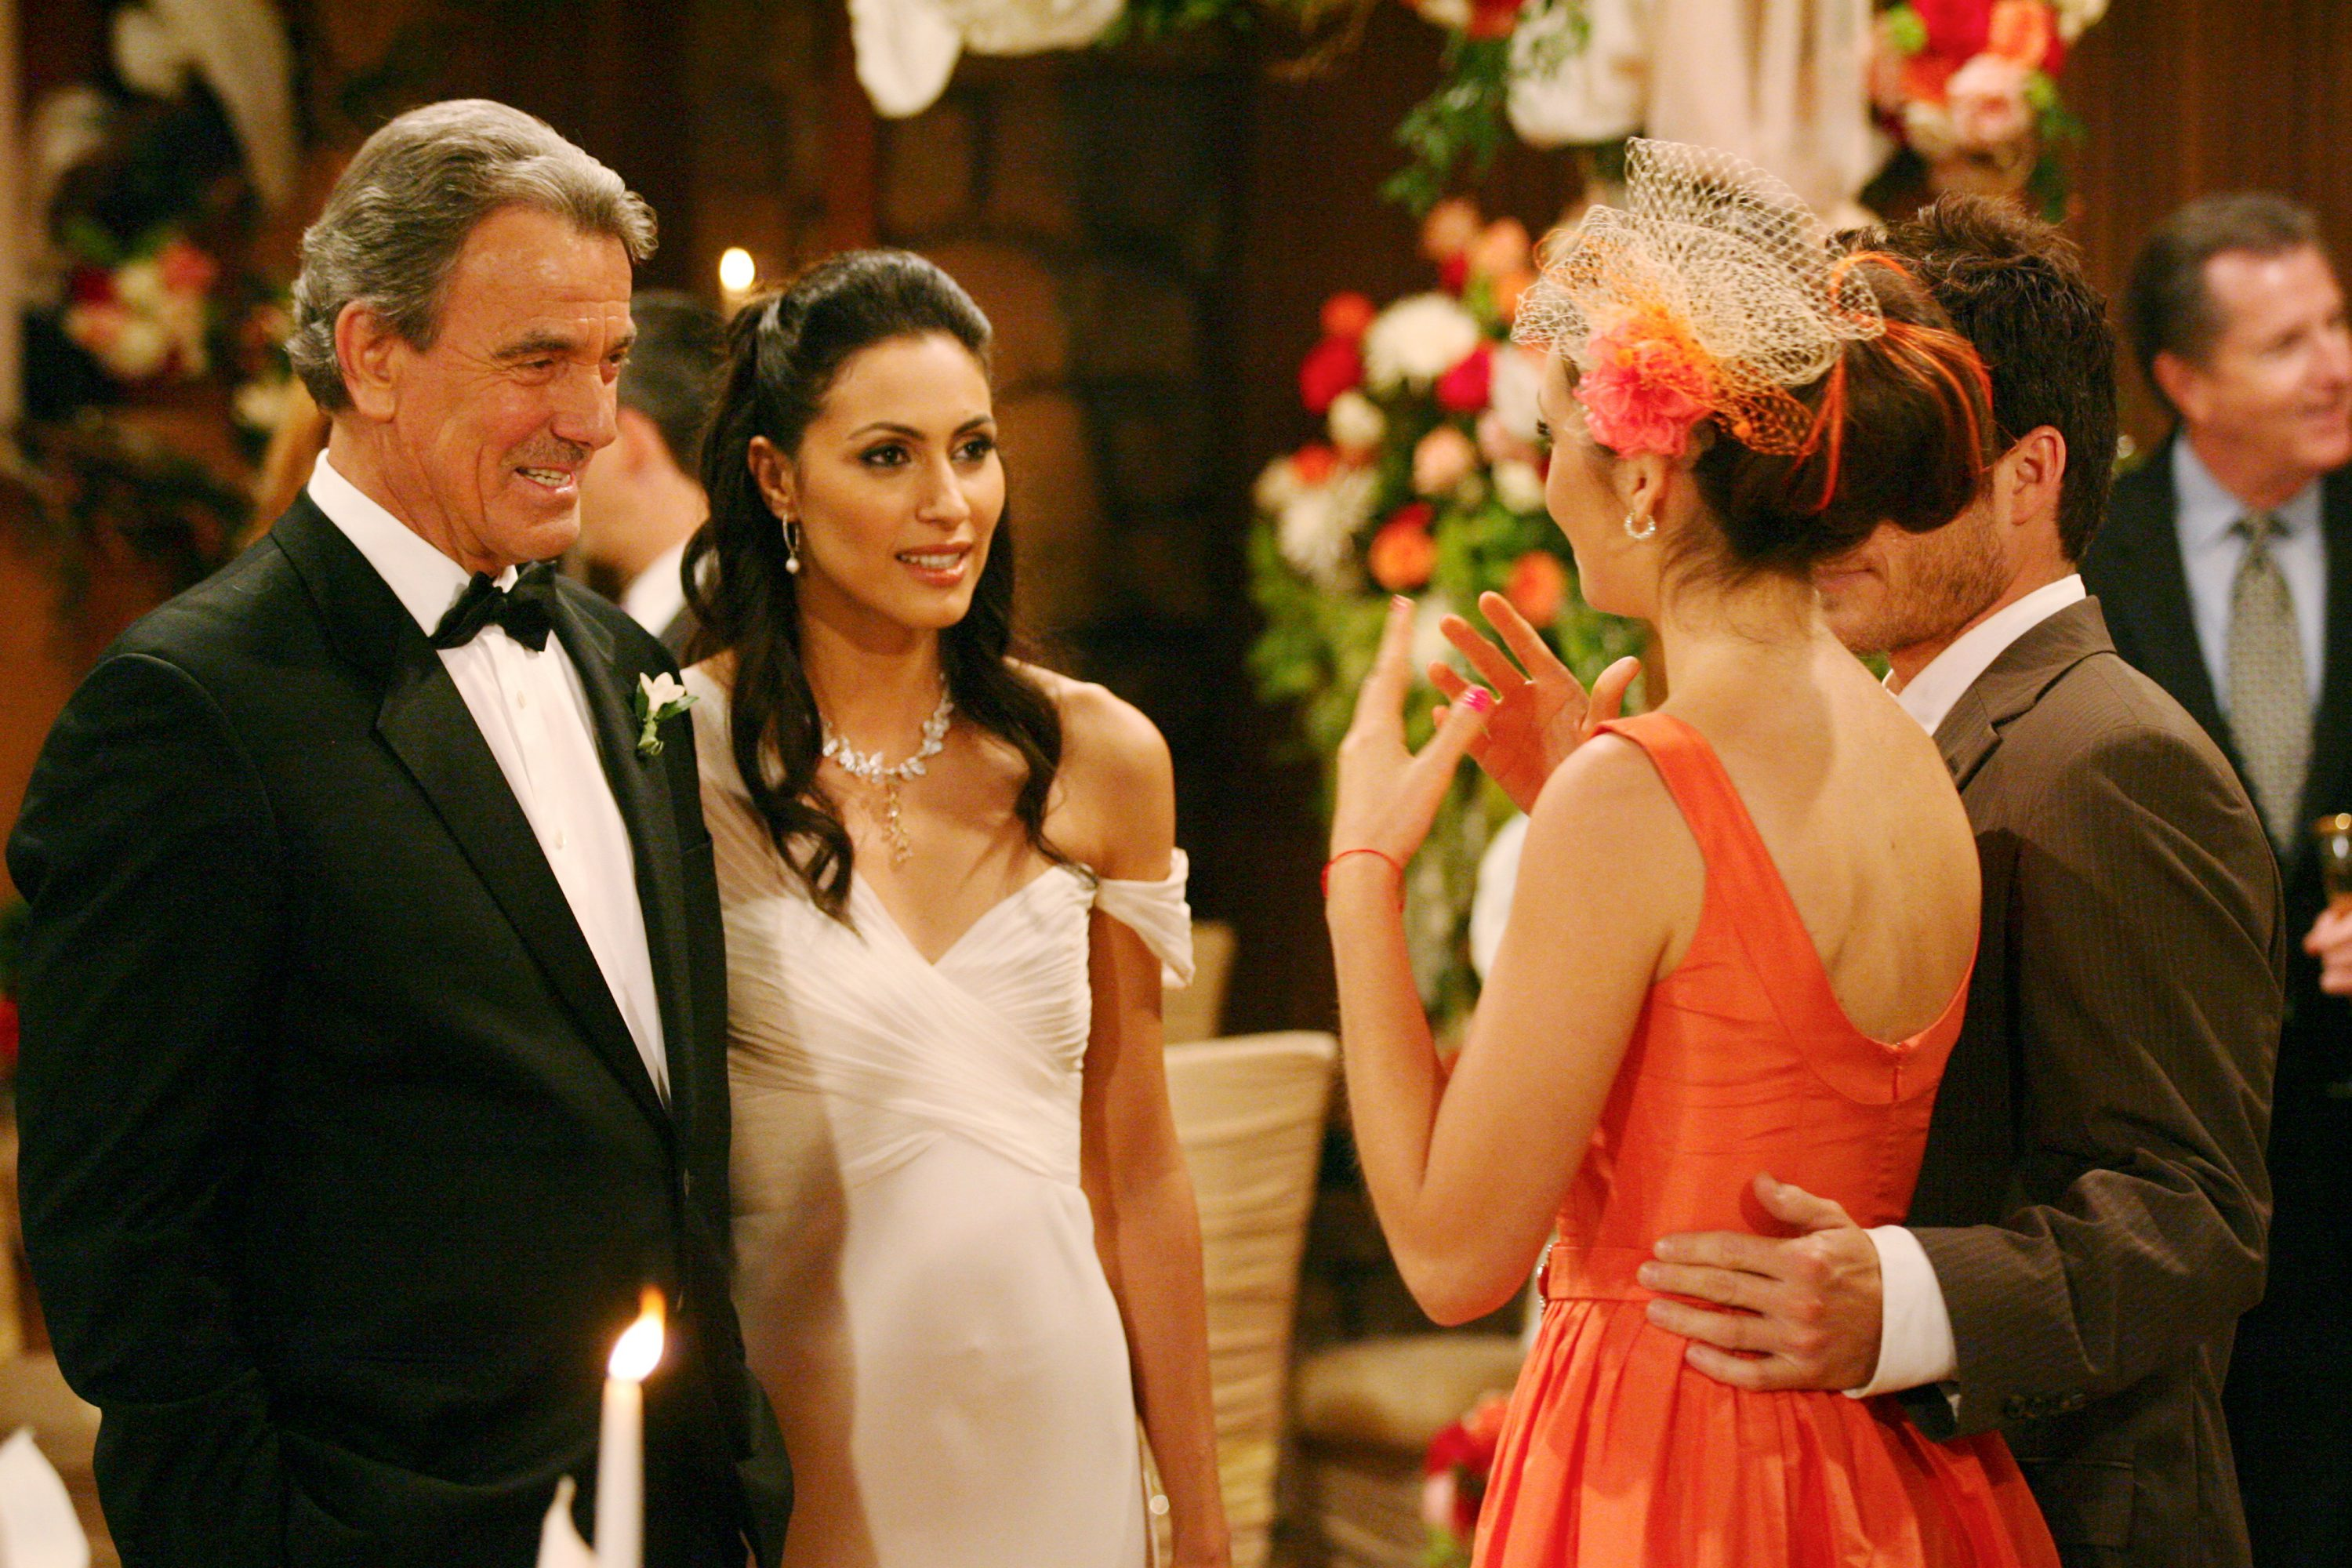 Victor married his daughter's best friend, Sabrina Costelana, during a lavish summertime wedding.